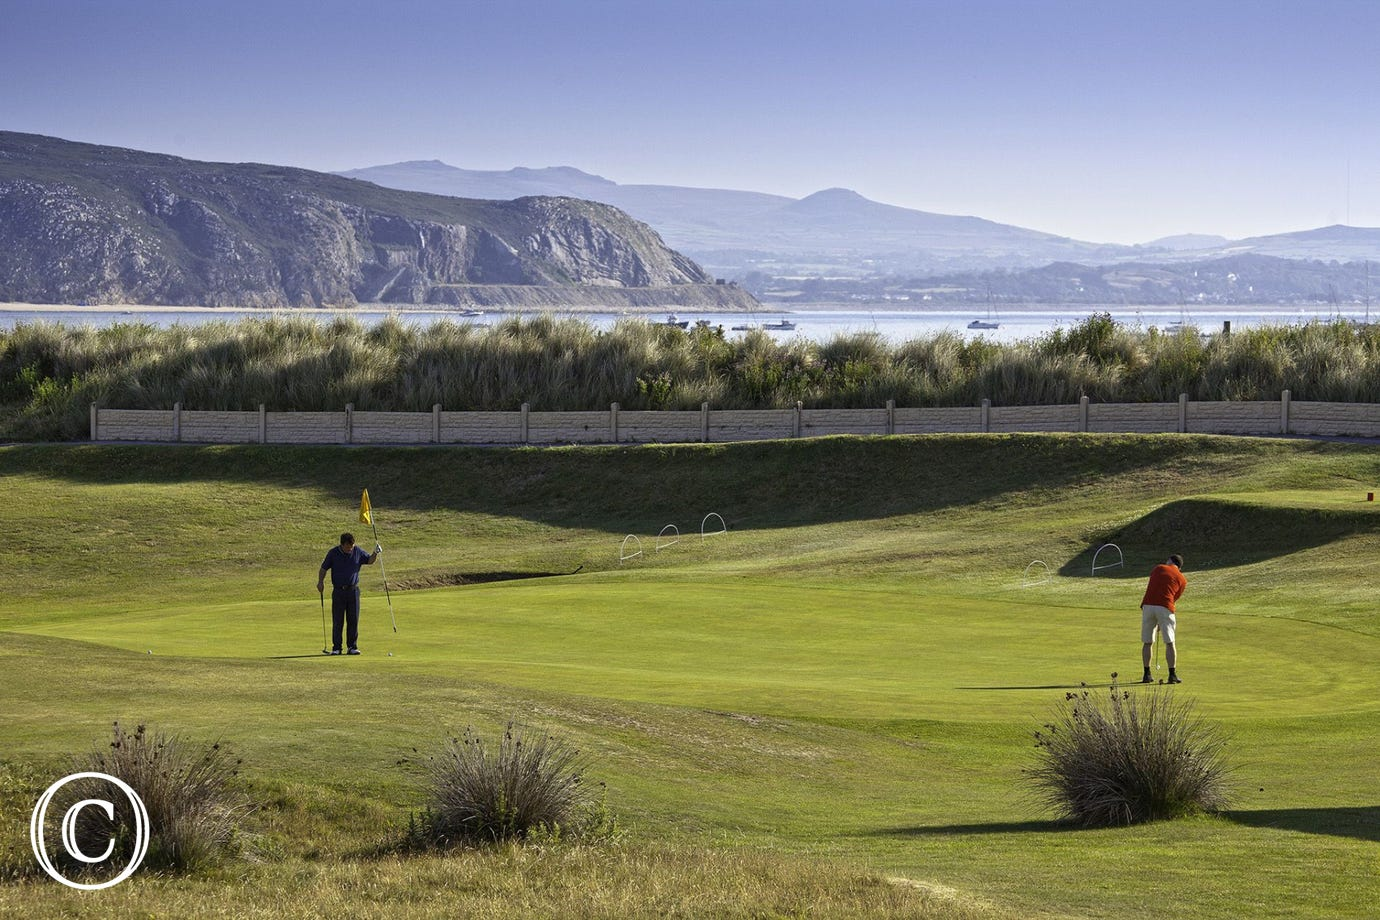 Abersoch Golf Course with magnificent coastal scenery